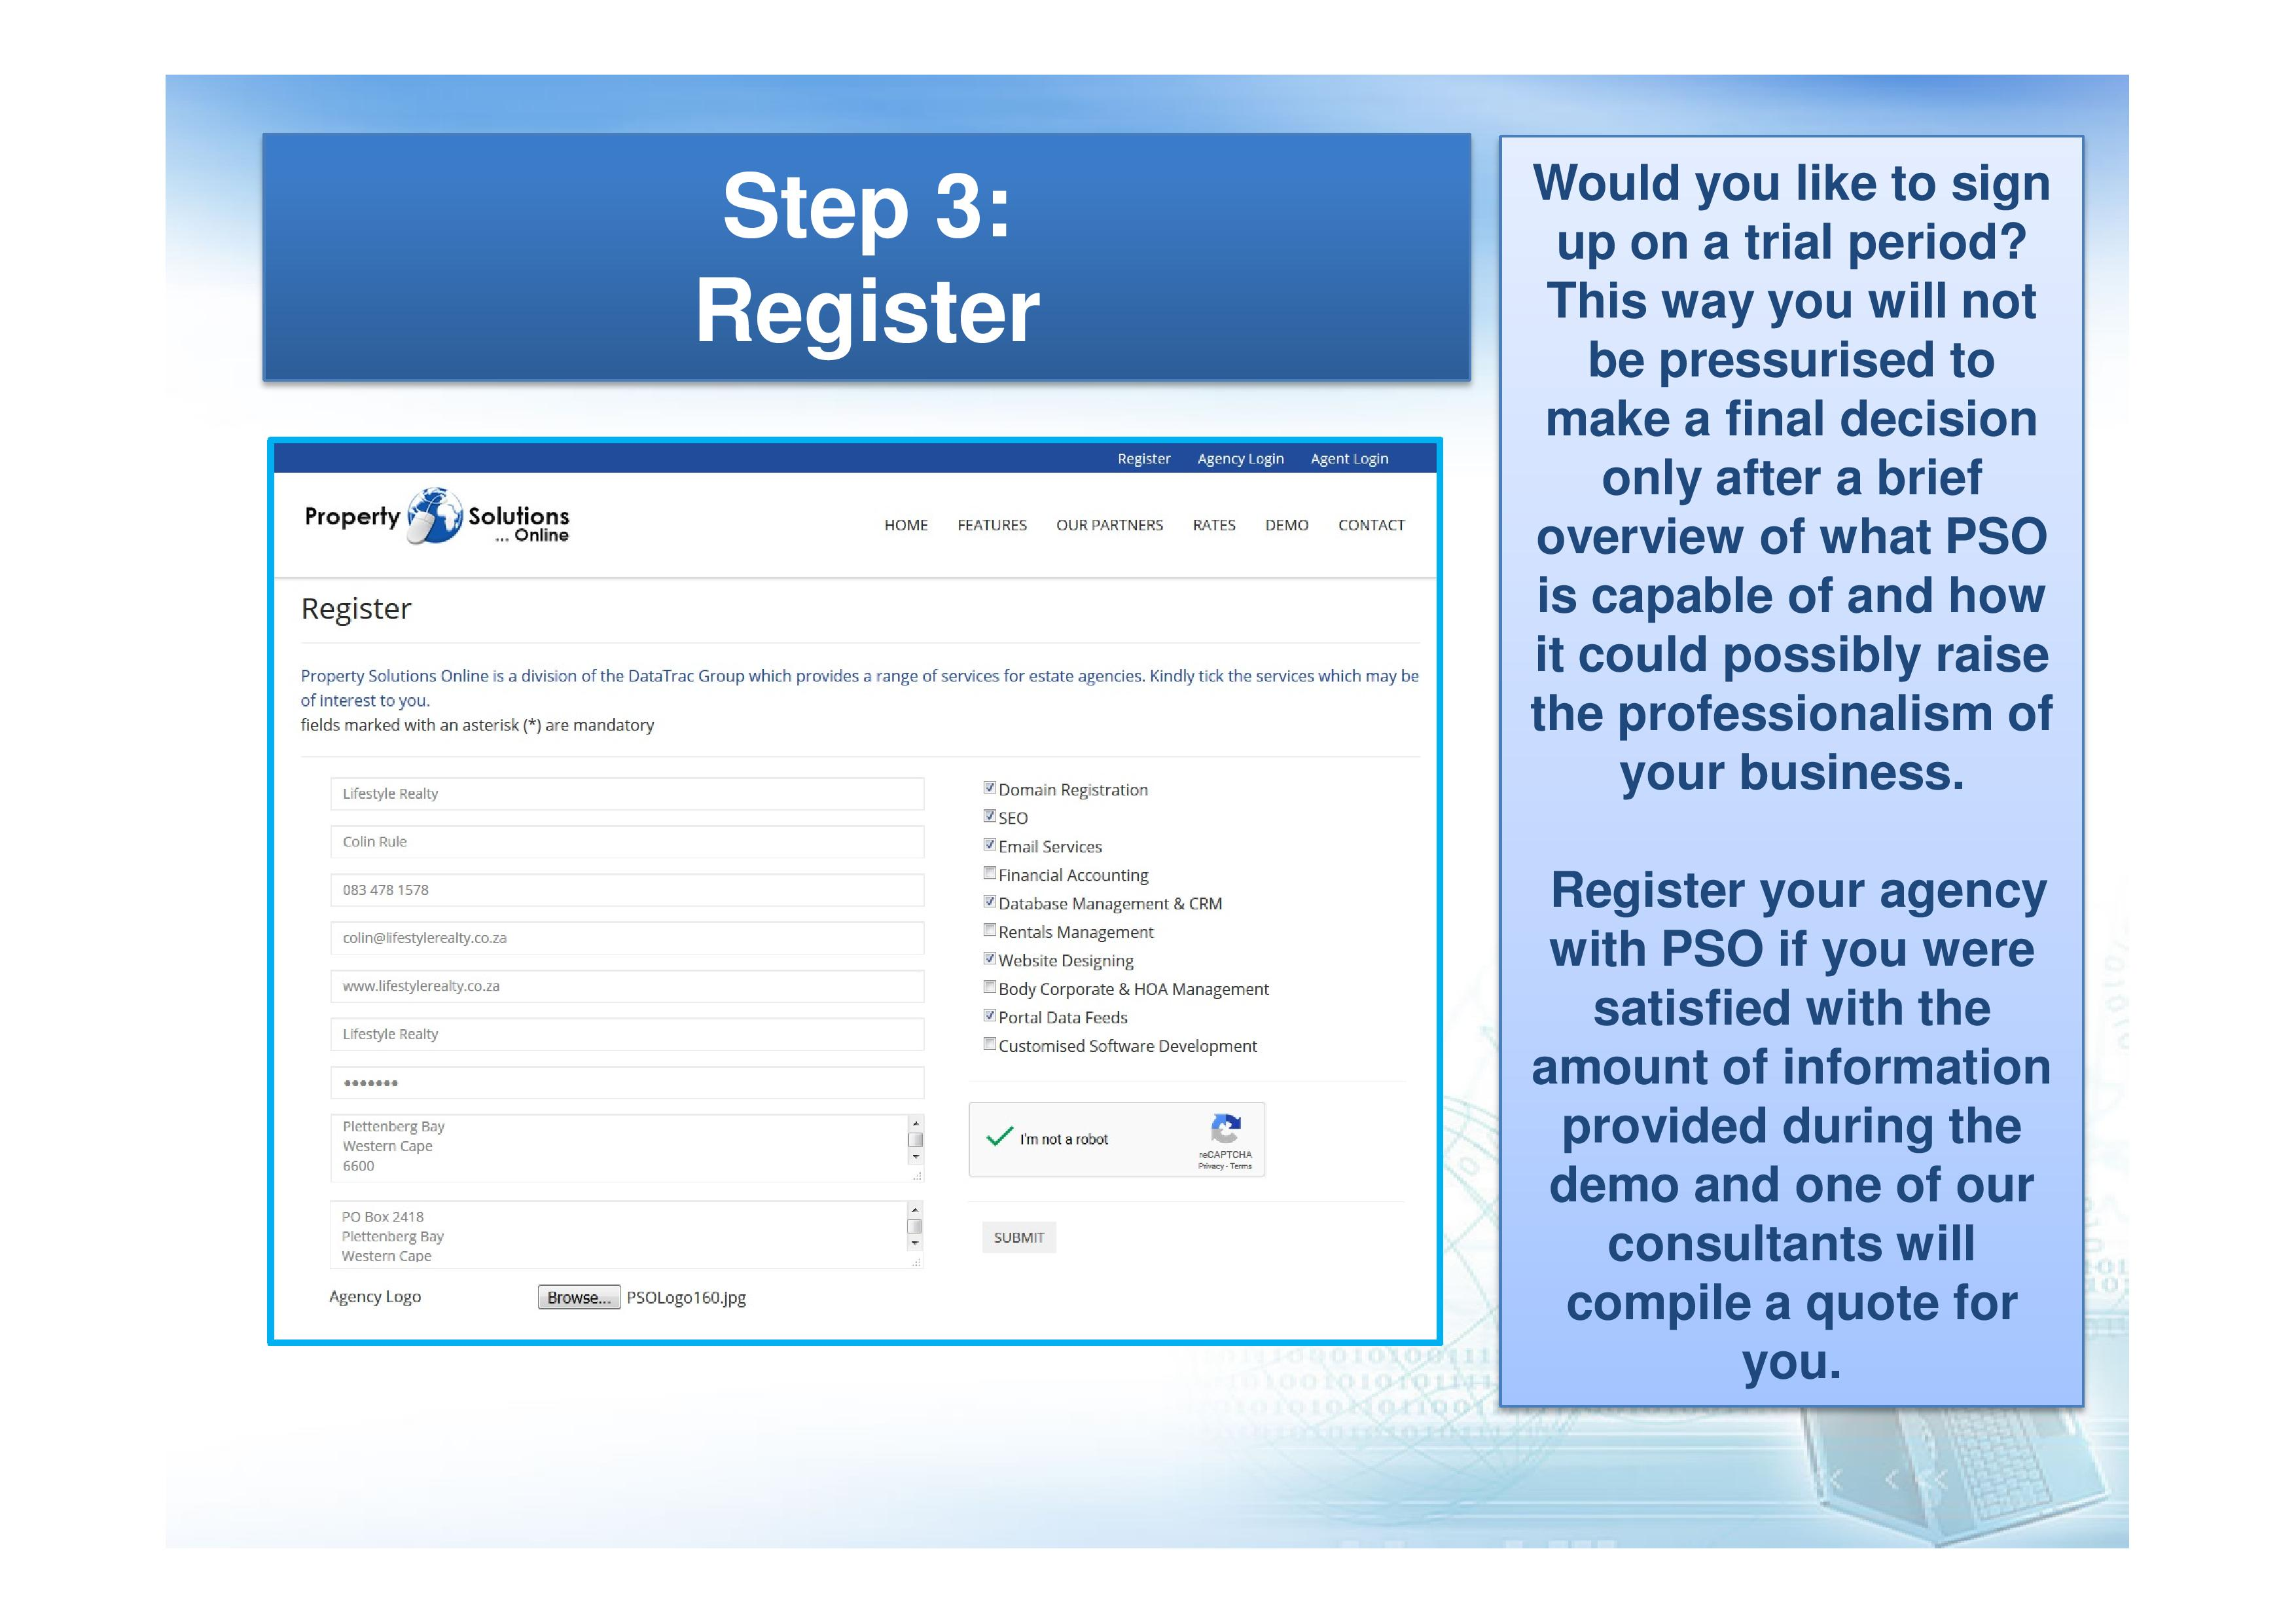 Would you like to sign up with PSO on a trial period?